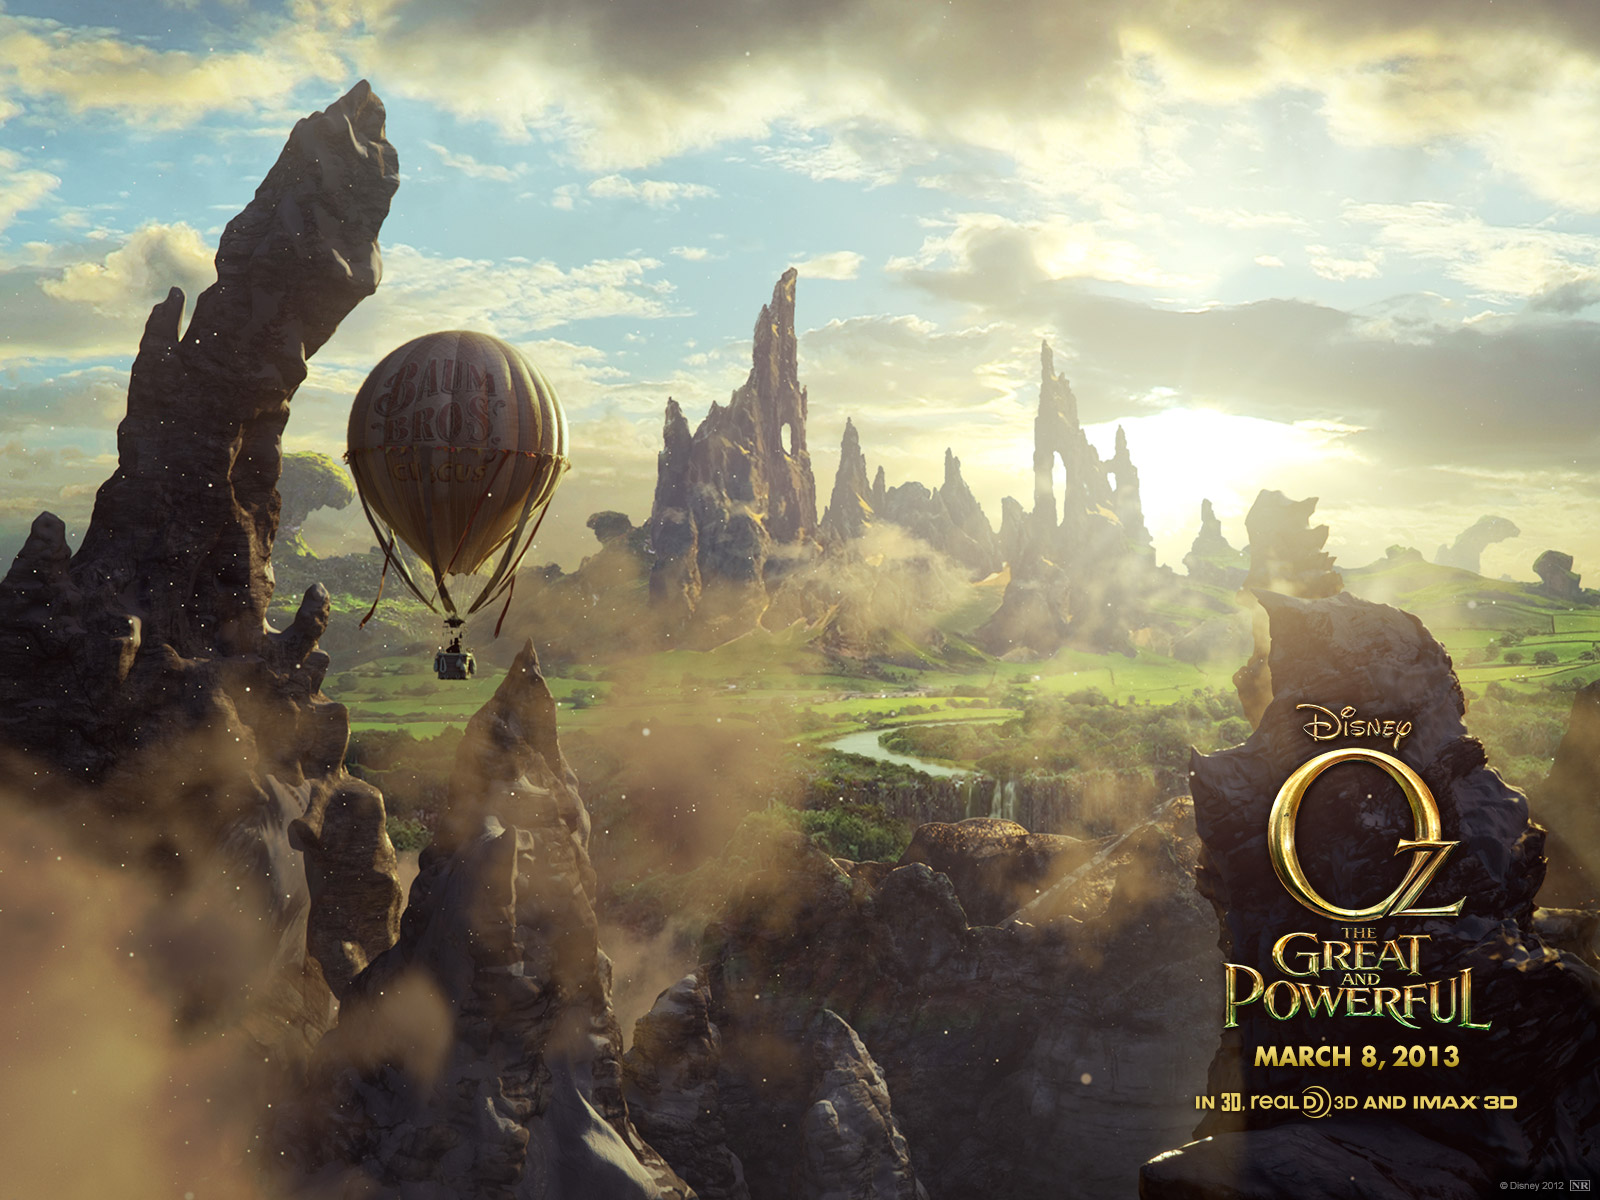 Oz-the-Great-and-Powerful-3D-Wallpapers.jpg